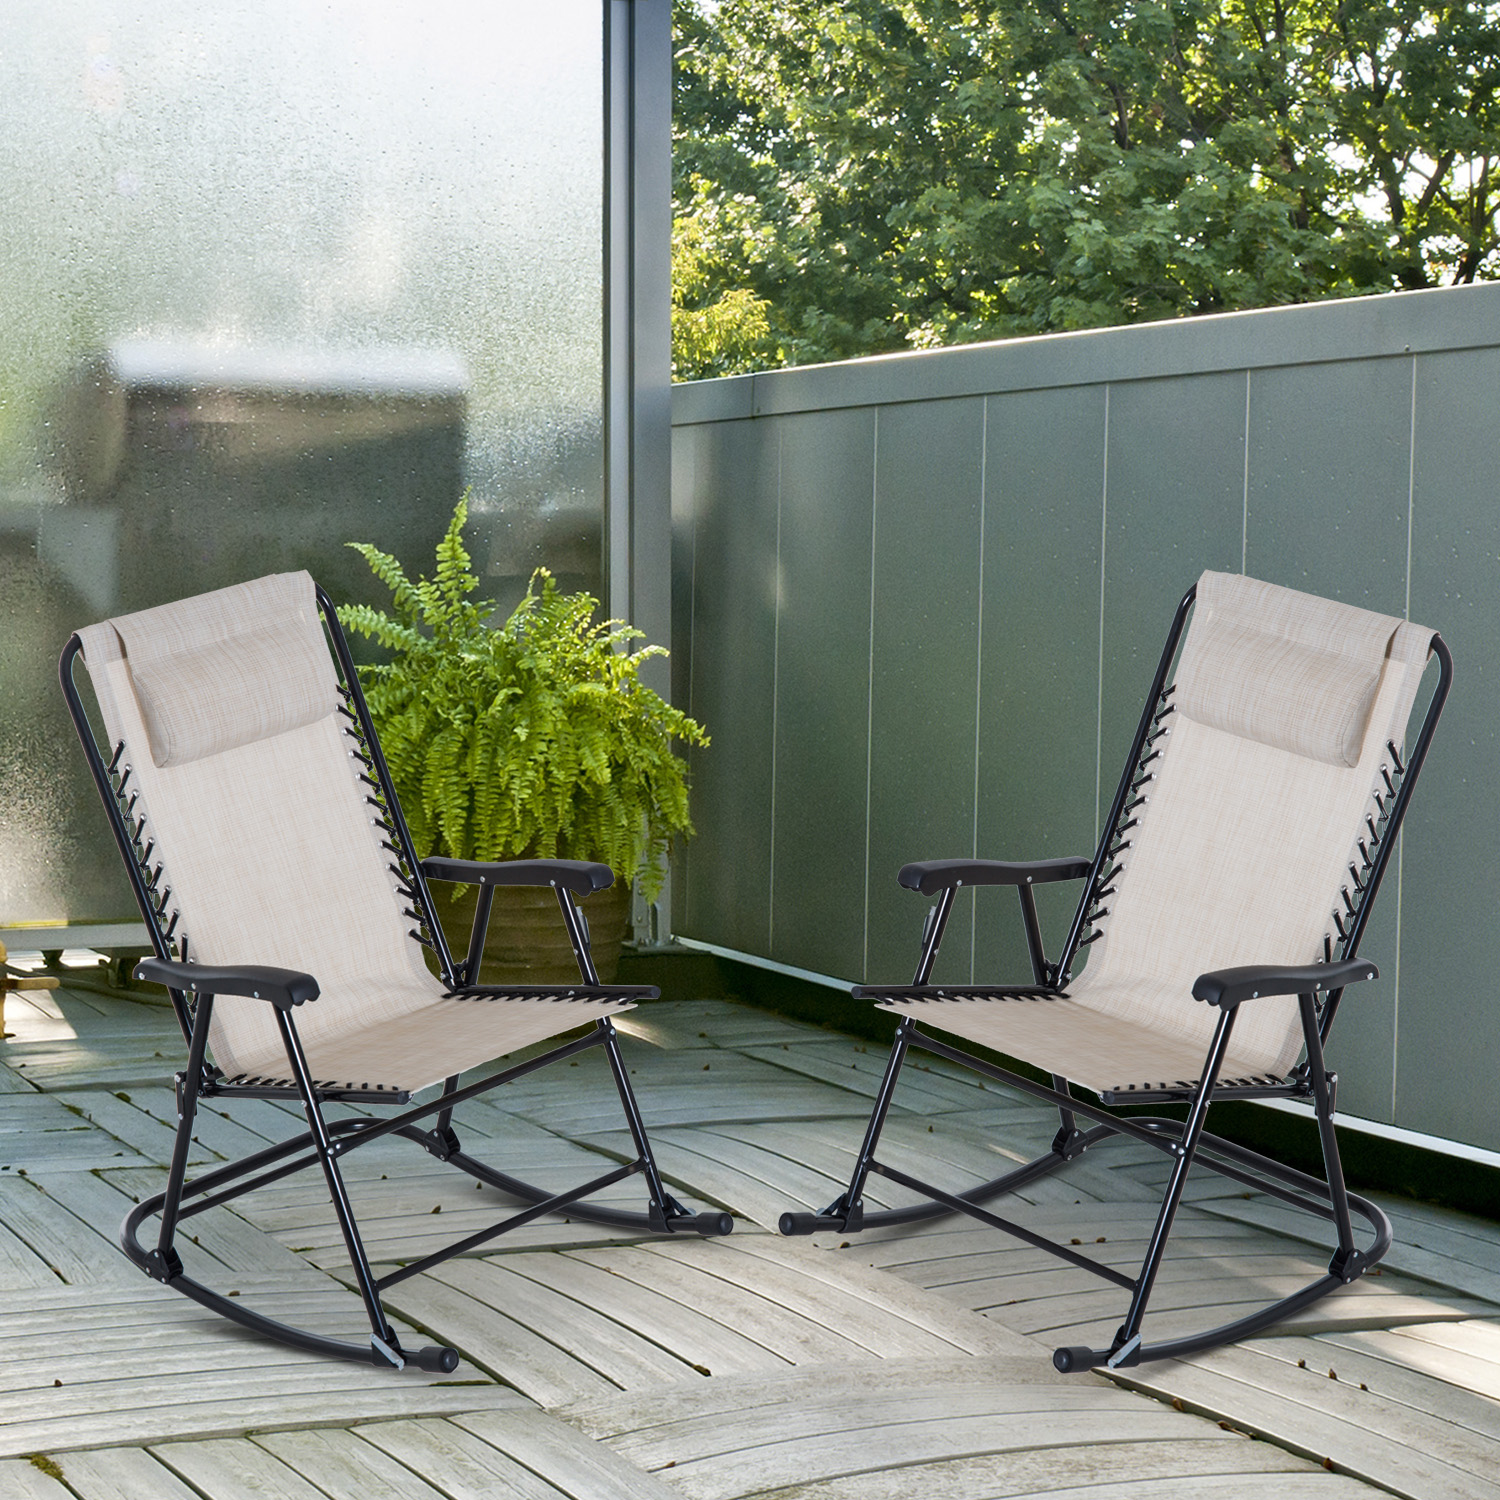 details about outsunny mesh outdoor patio folding rocking chair set porch lawn furniture